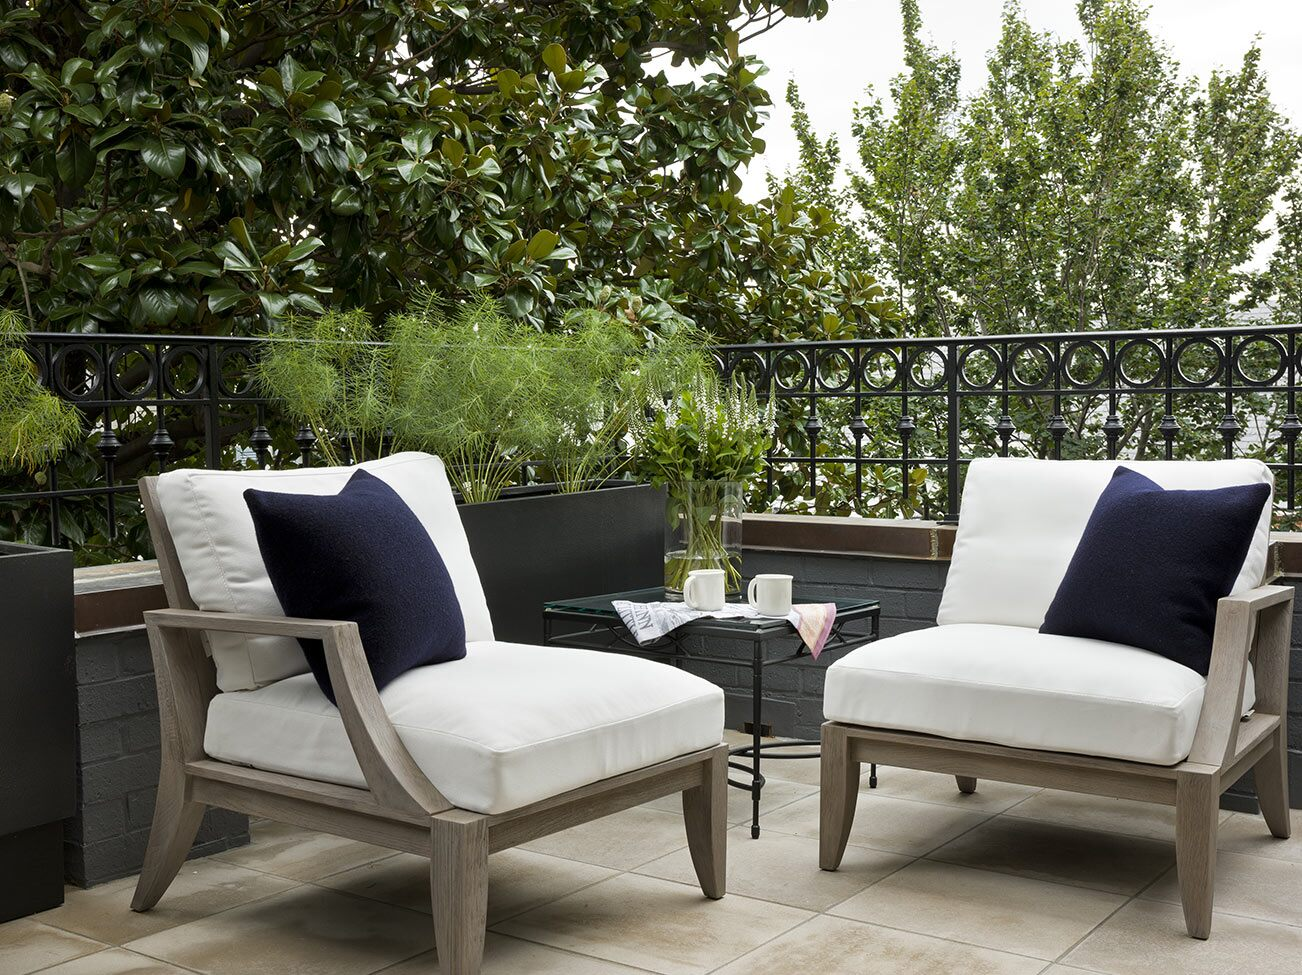 Stone patio with decorative wrought iron railing, white cushioned chairs, and navy accent pillows set against lush greenery.